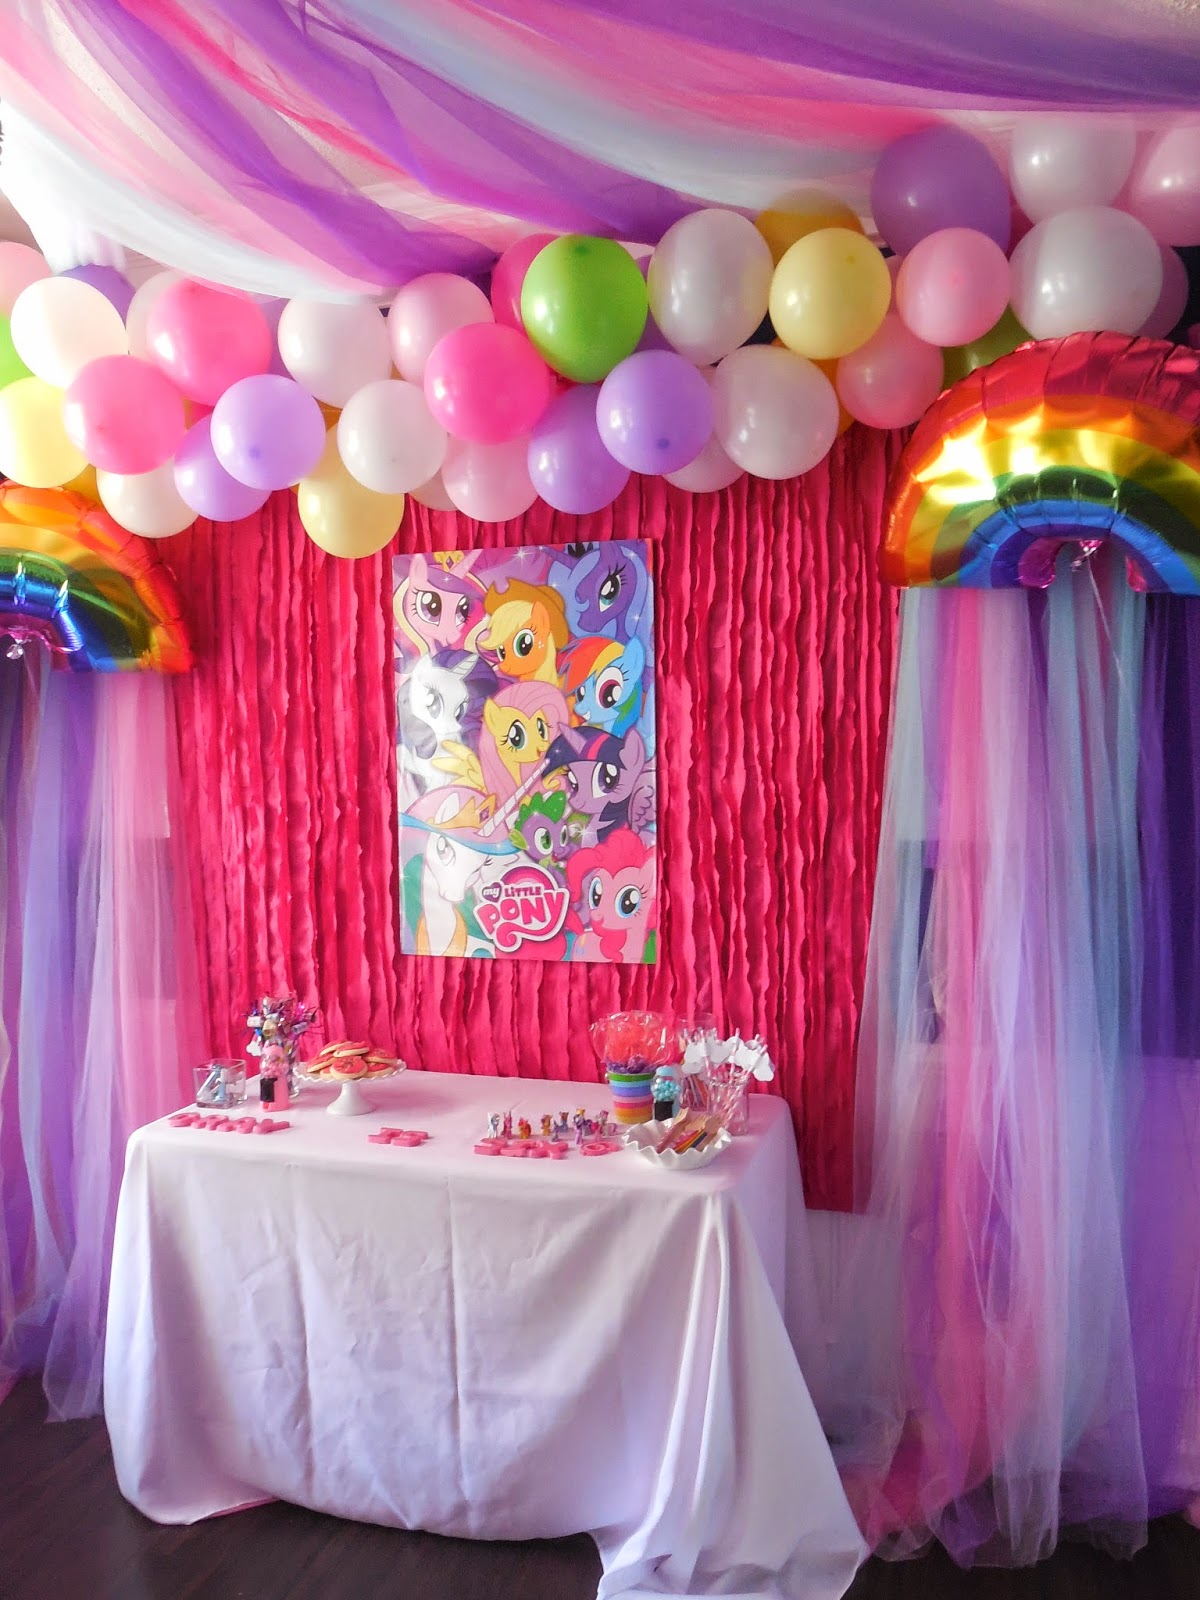 Raising them up right my little pony party for Birthday decoration ideas at home with balloons